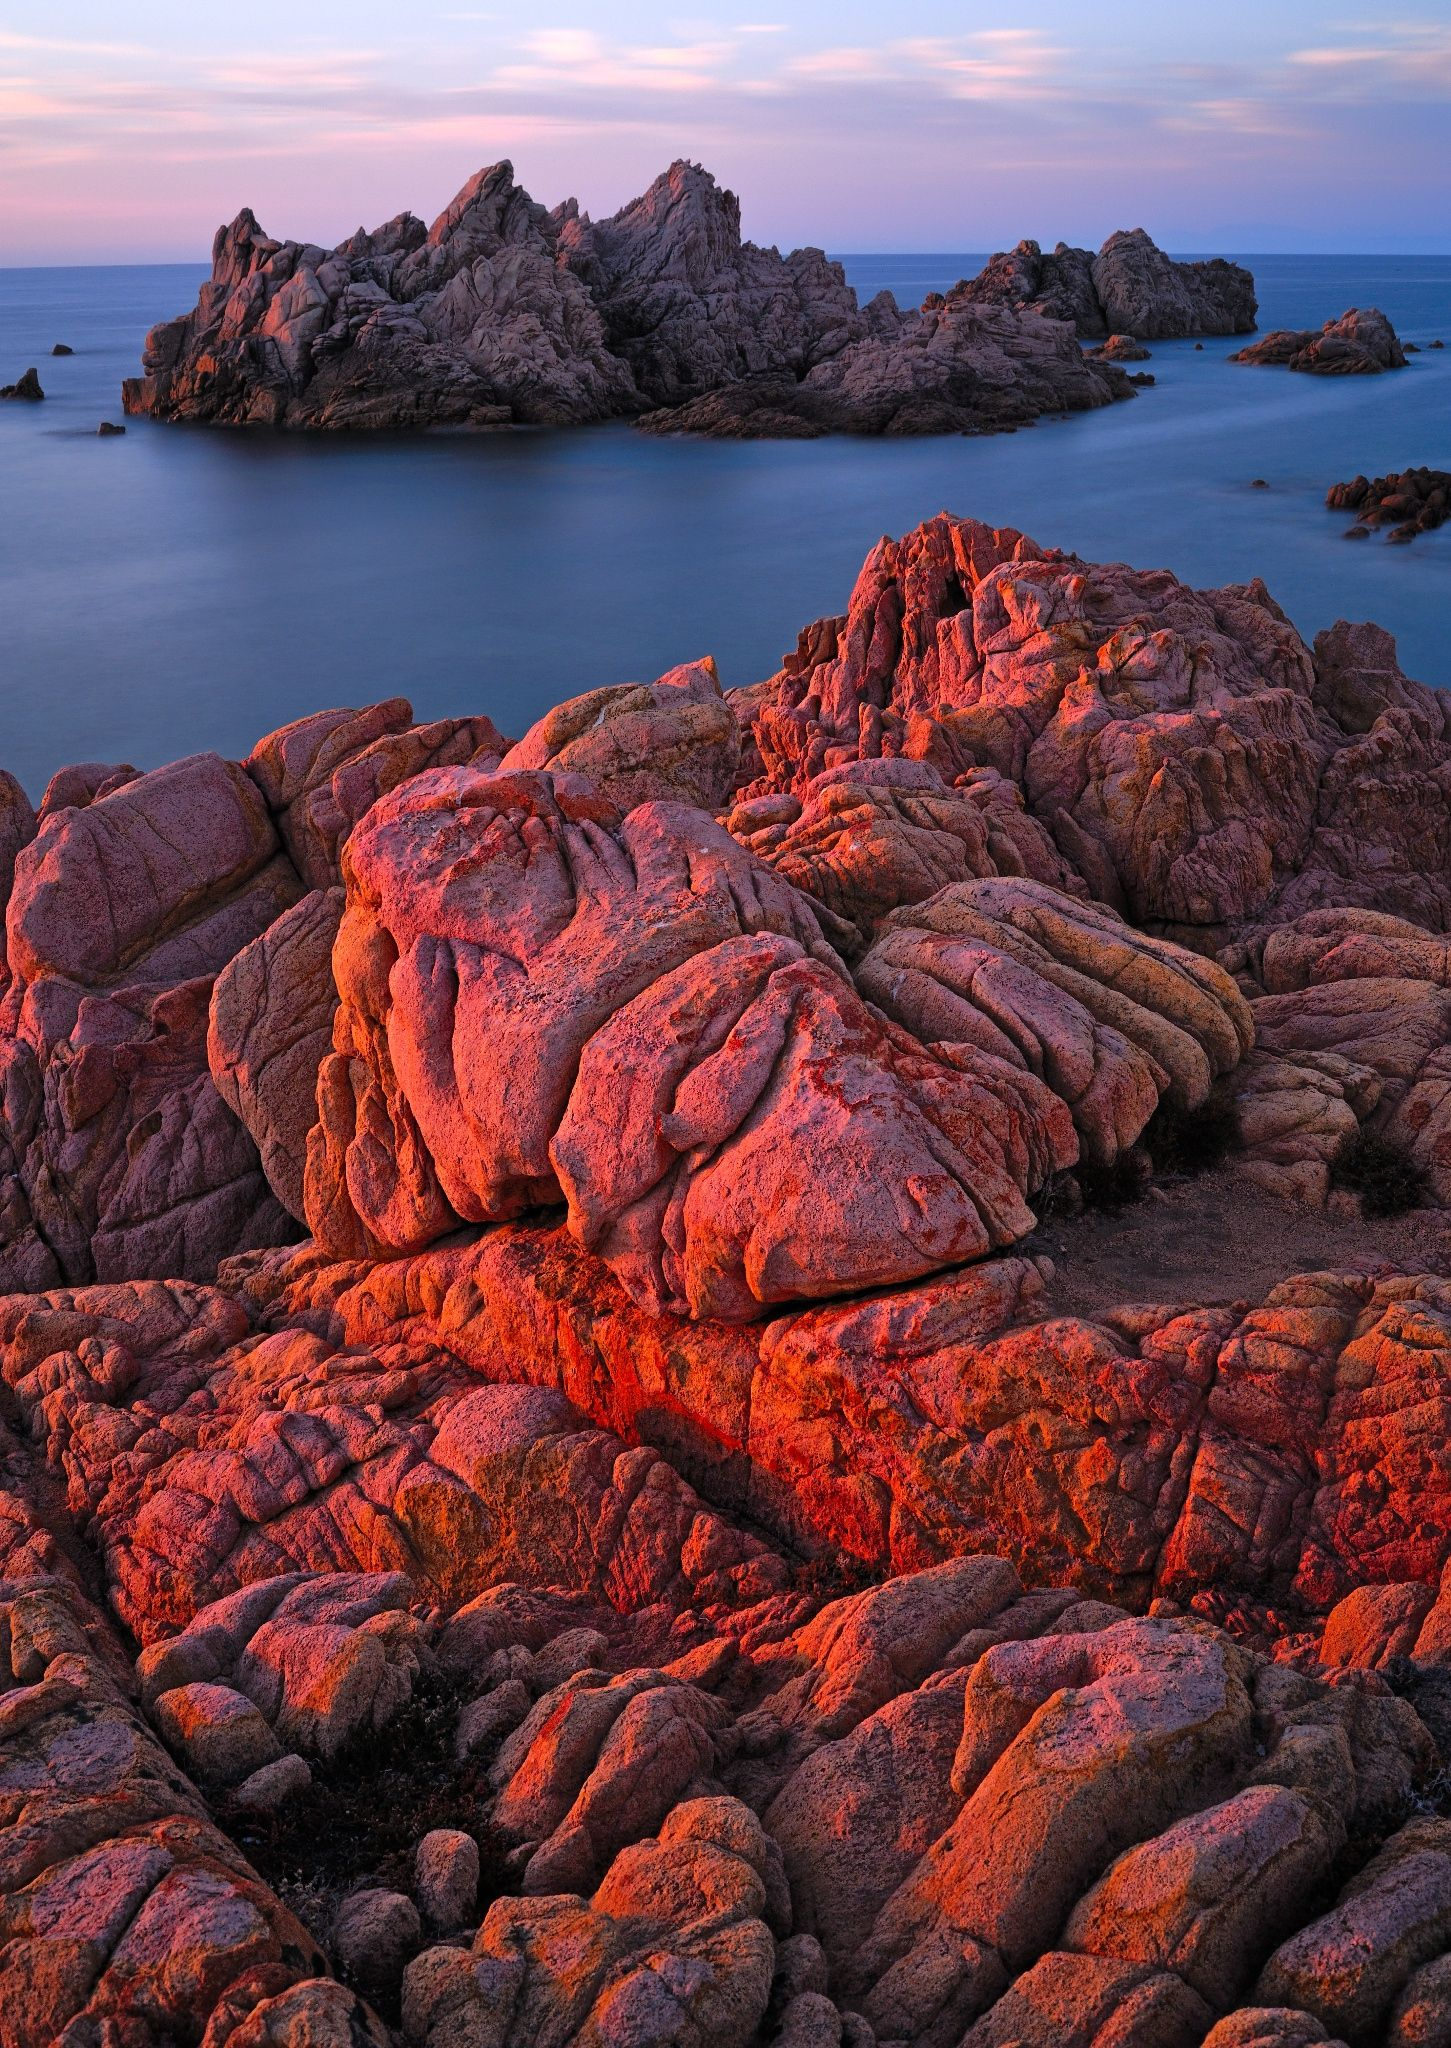 Sunset's warm light fires up the rocks in Cala Rossa.